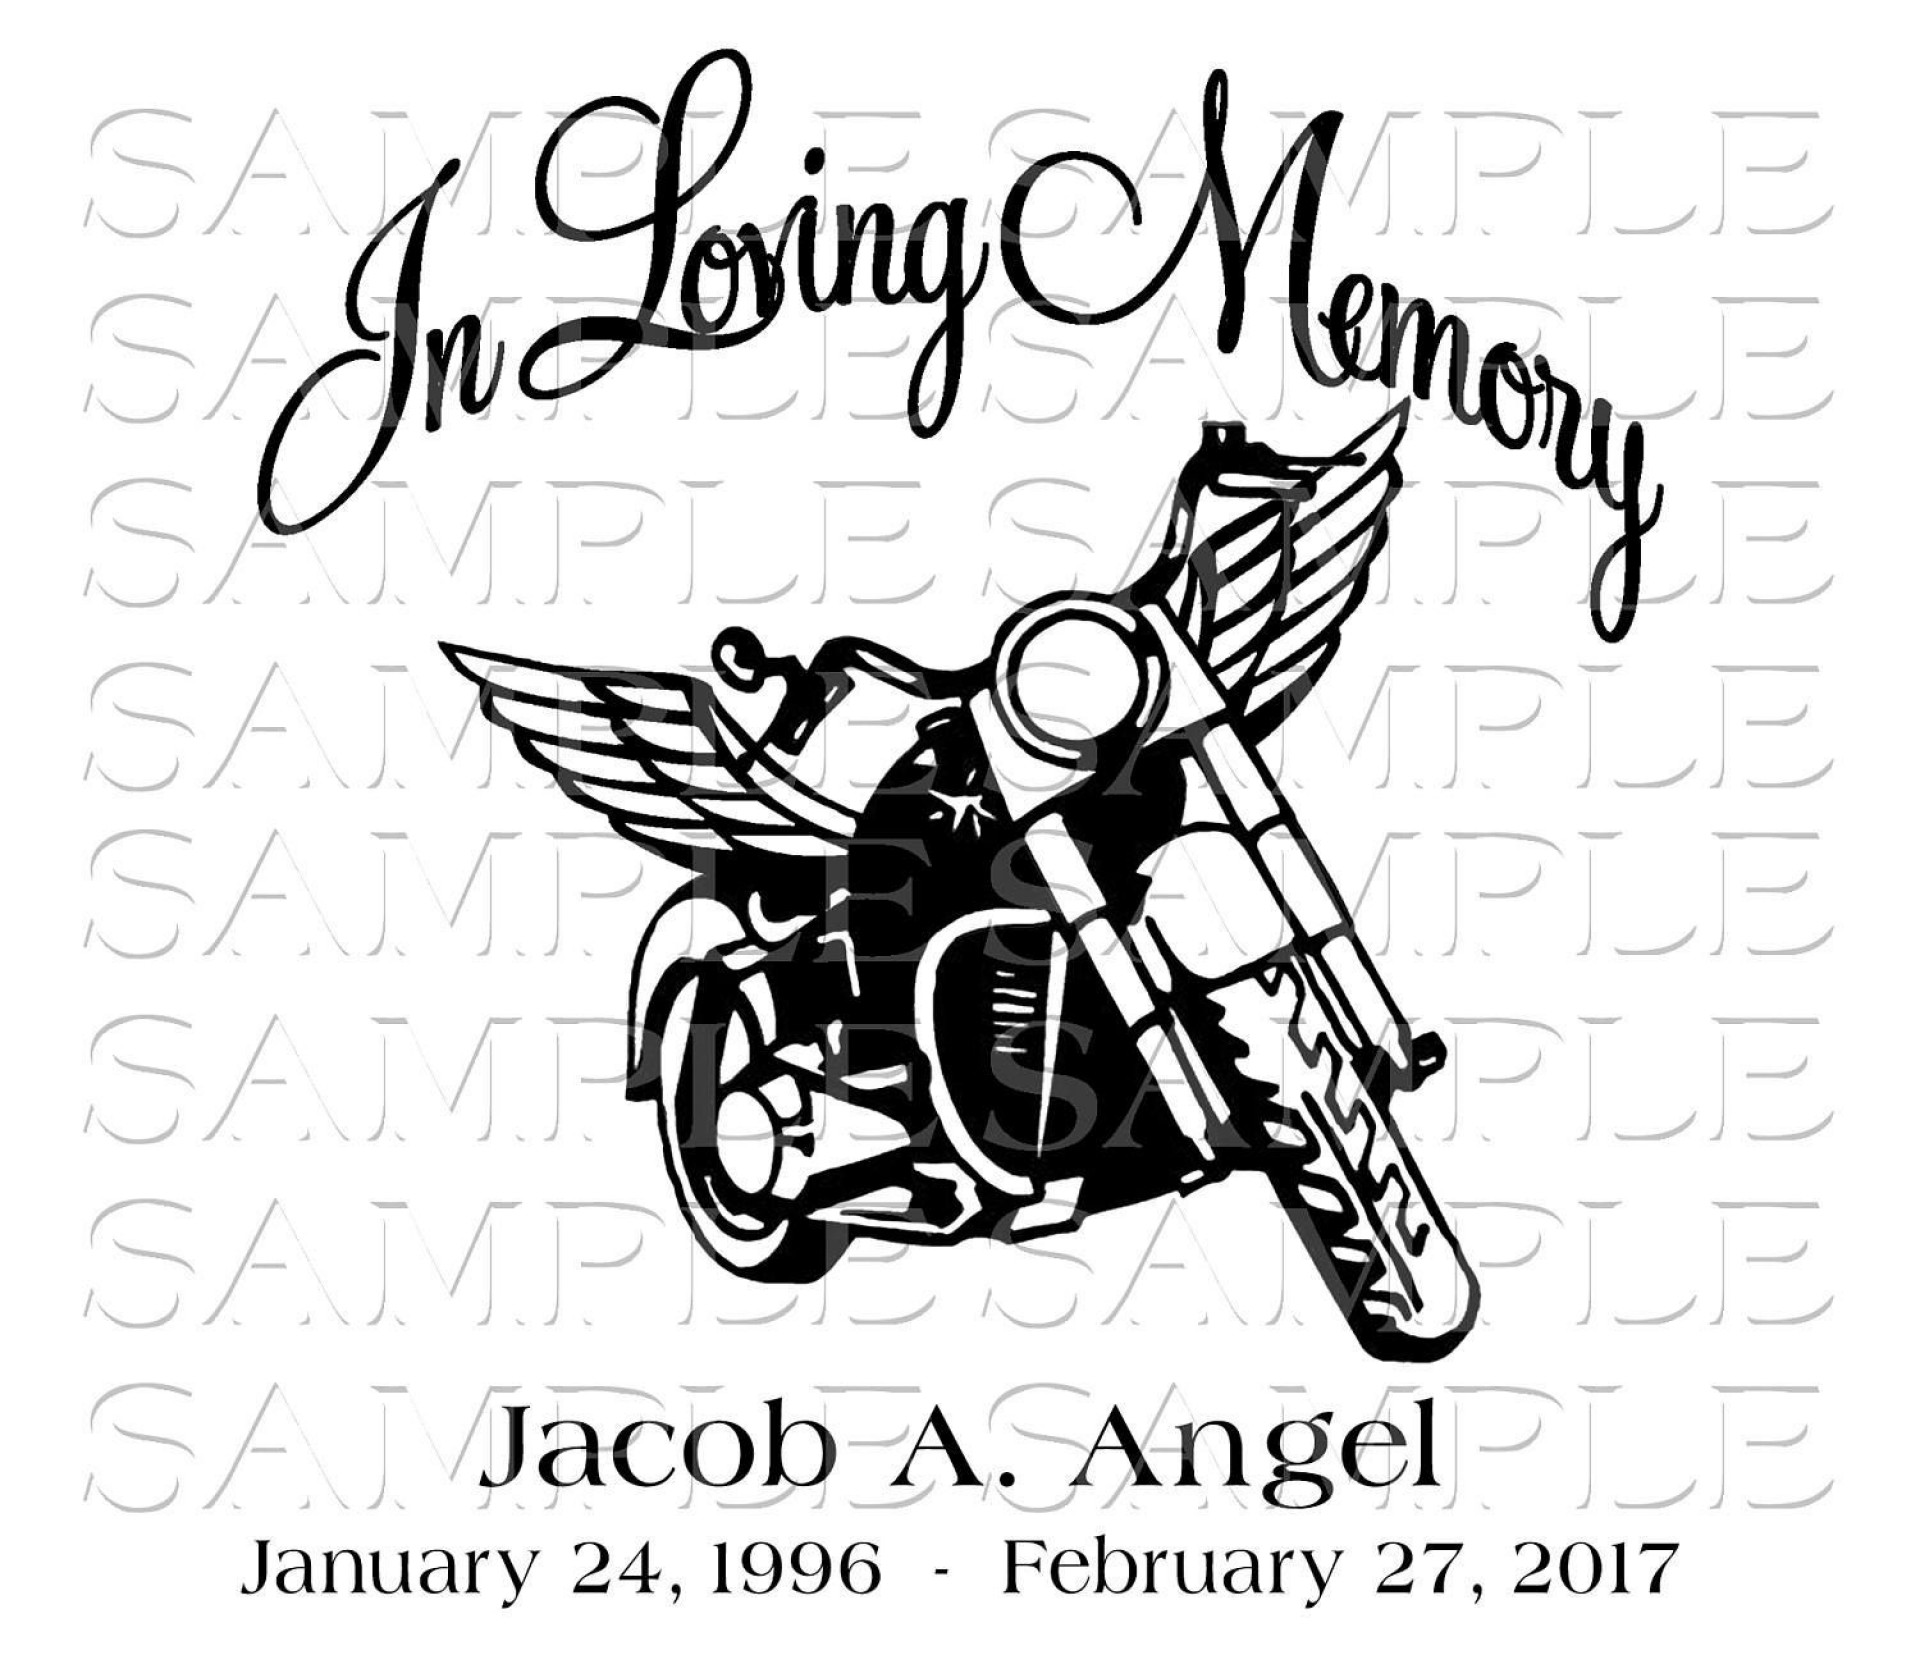 007 Awful In Loving Memory Decal Template Idea  Templates1920